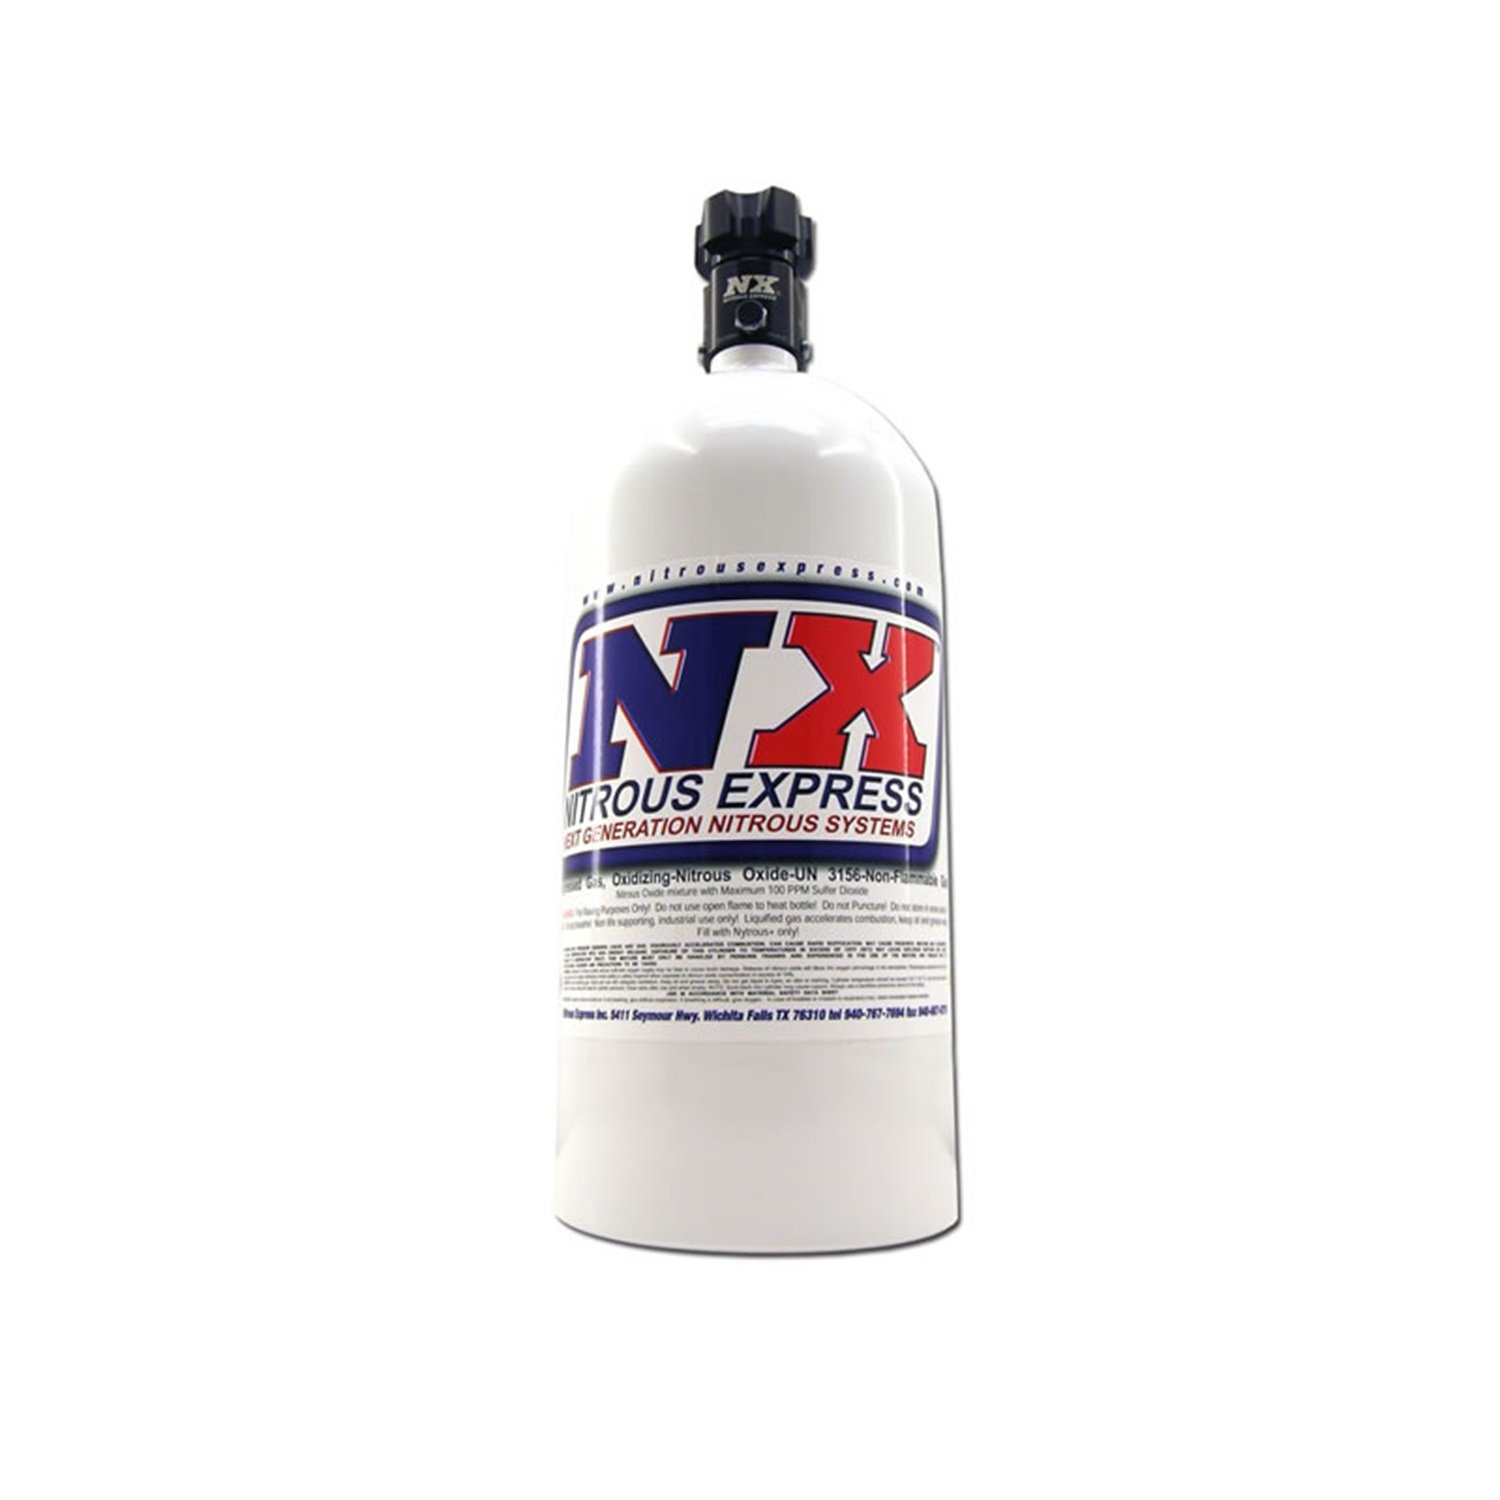 Nitrous Express 11050 Nitrous Bottle with Standard L45 Valve - 5 lbs.